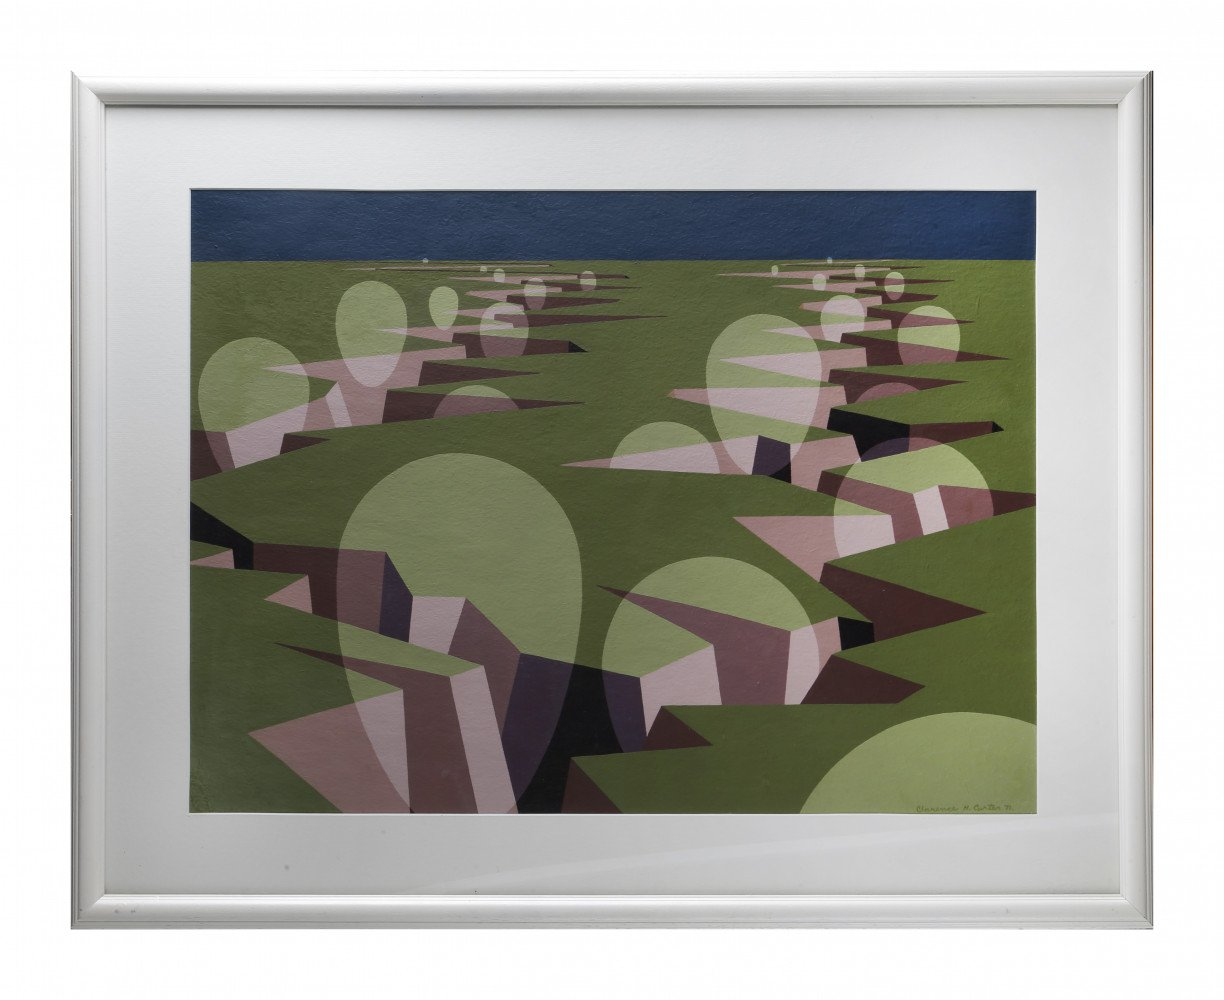 Abstract Landscape Acrylic on Texture Paper Painting: